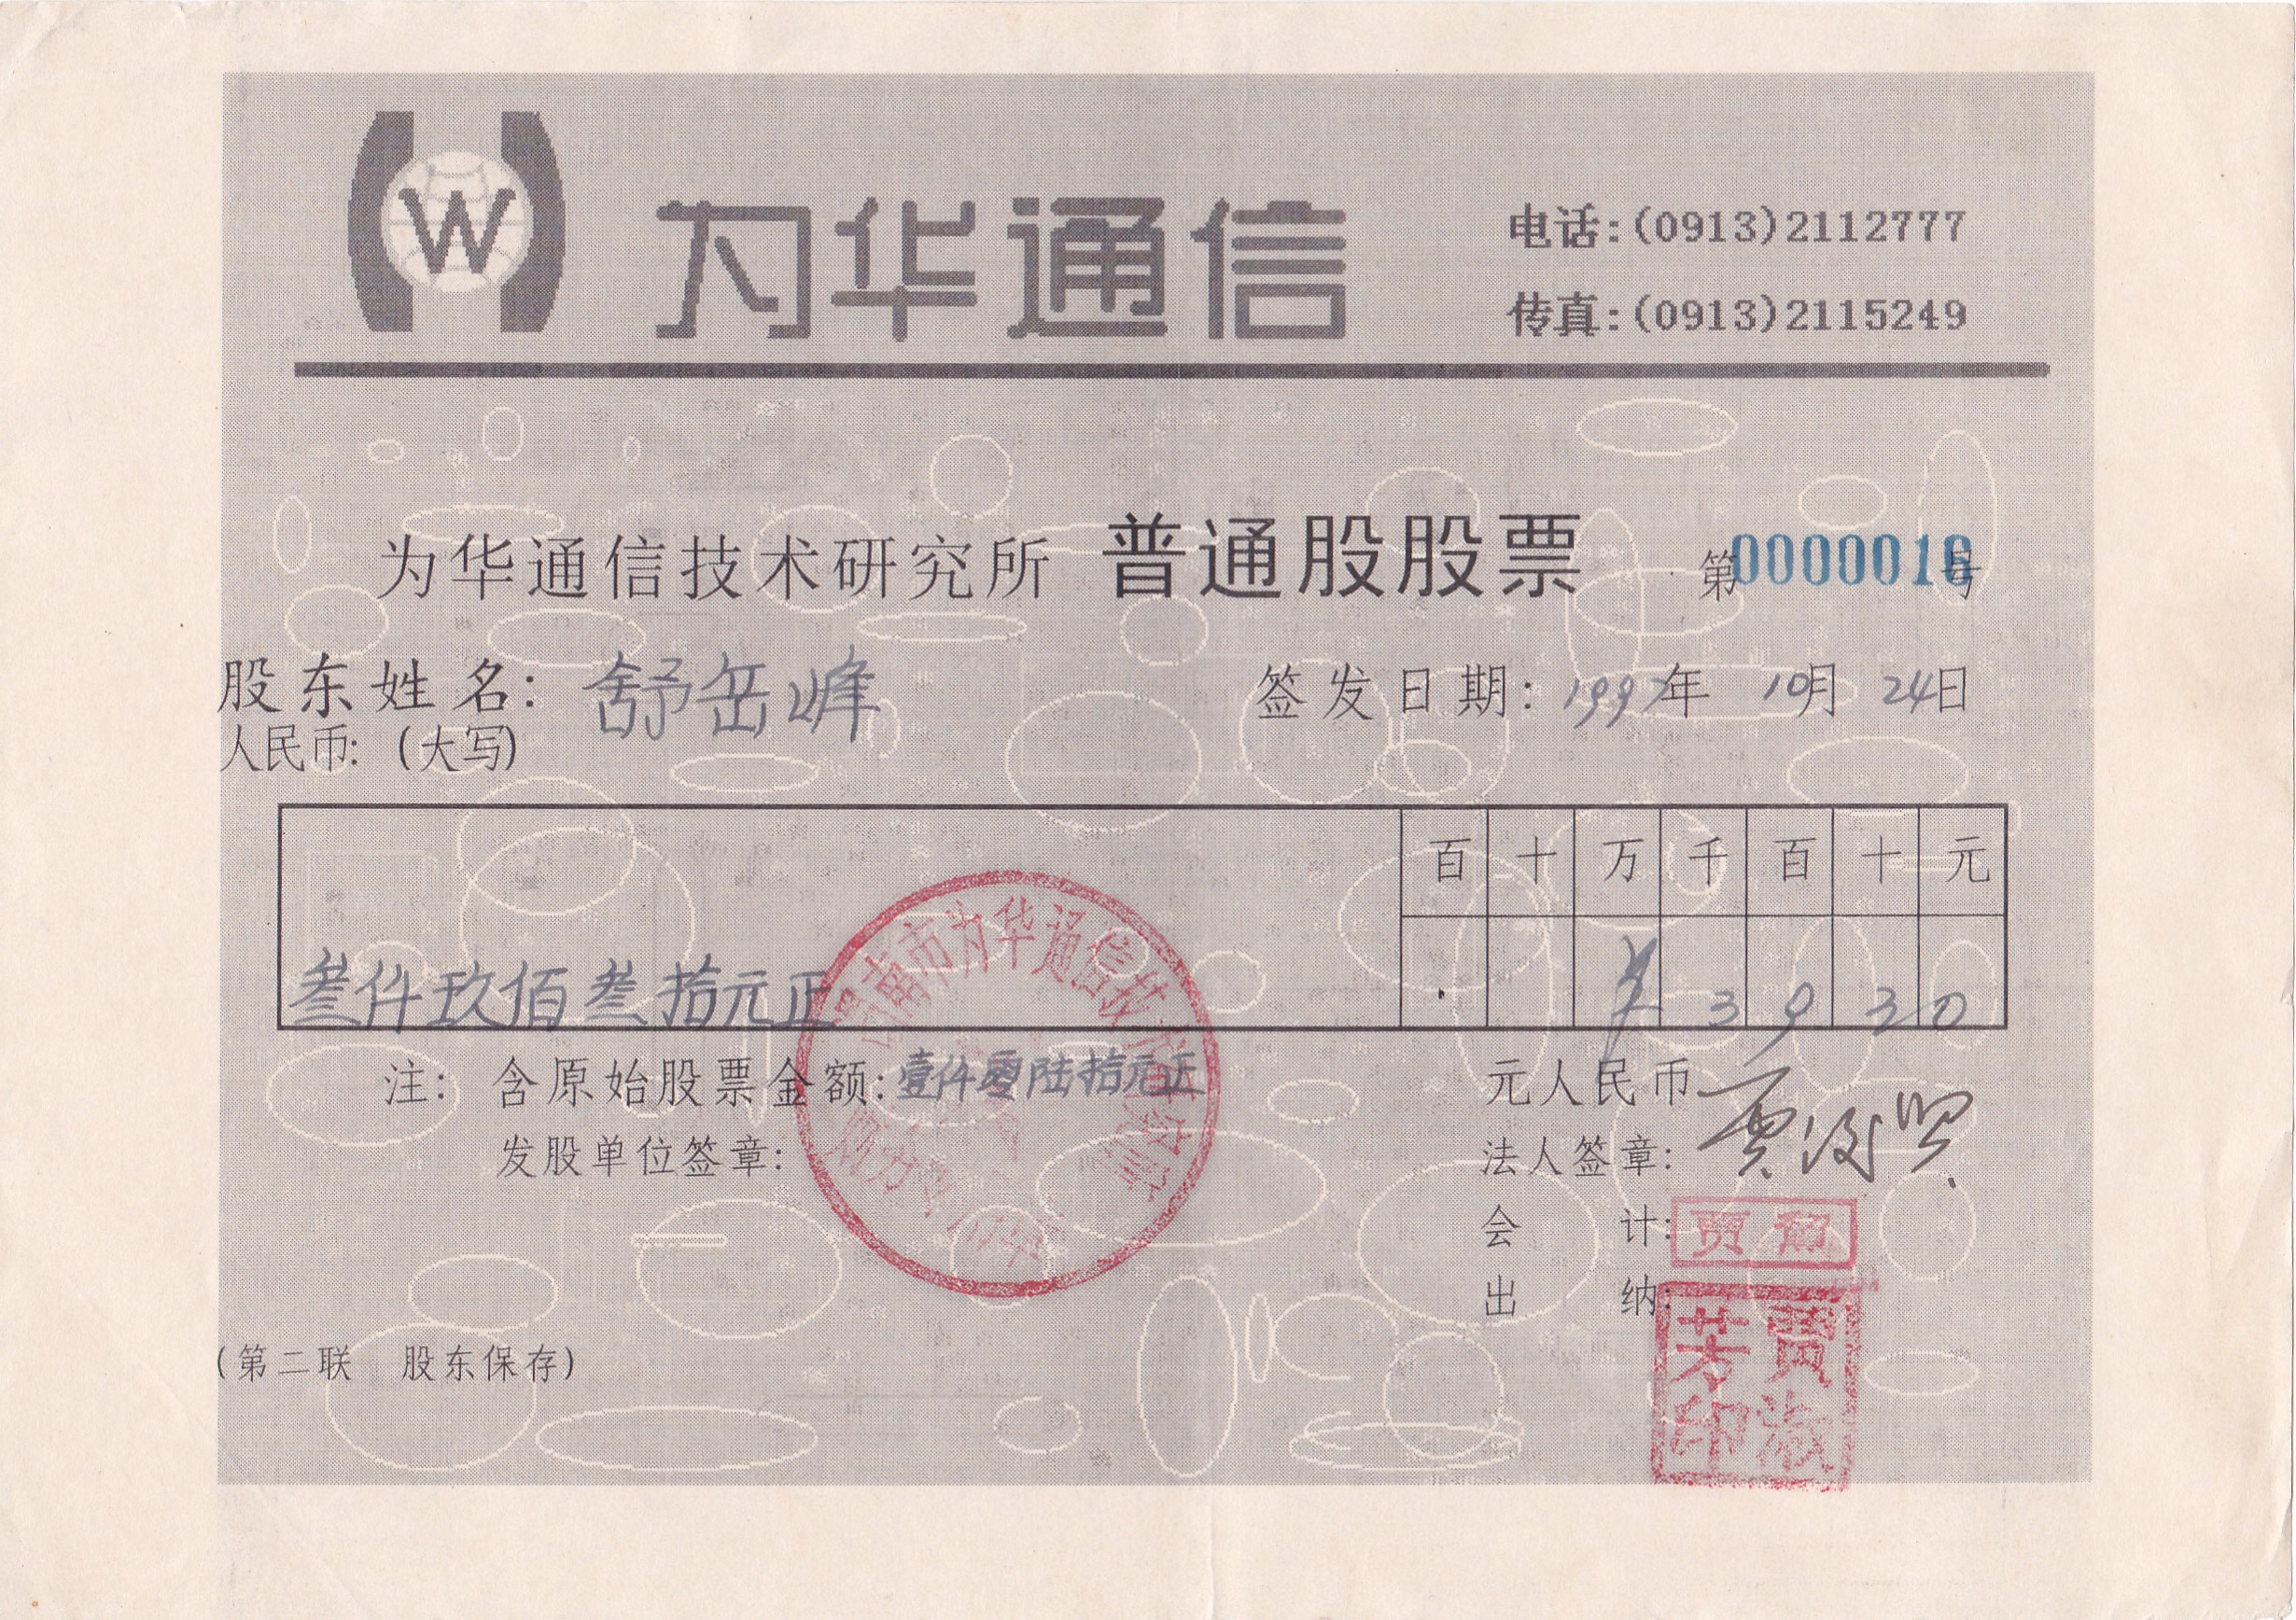 S3266, Wei-Hua Telecommunication Co, Stock Certificate of 1997, China